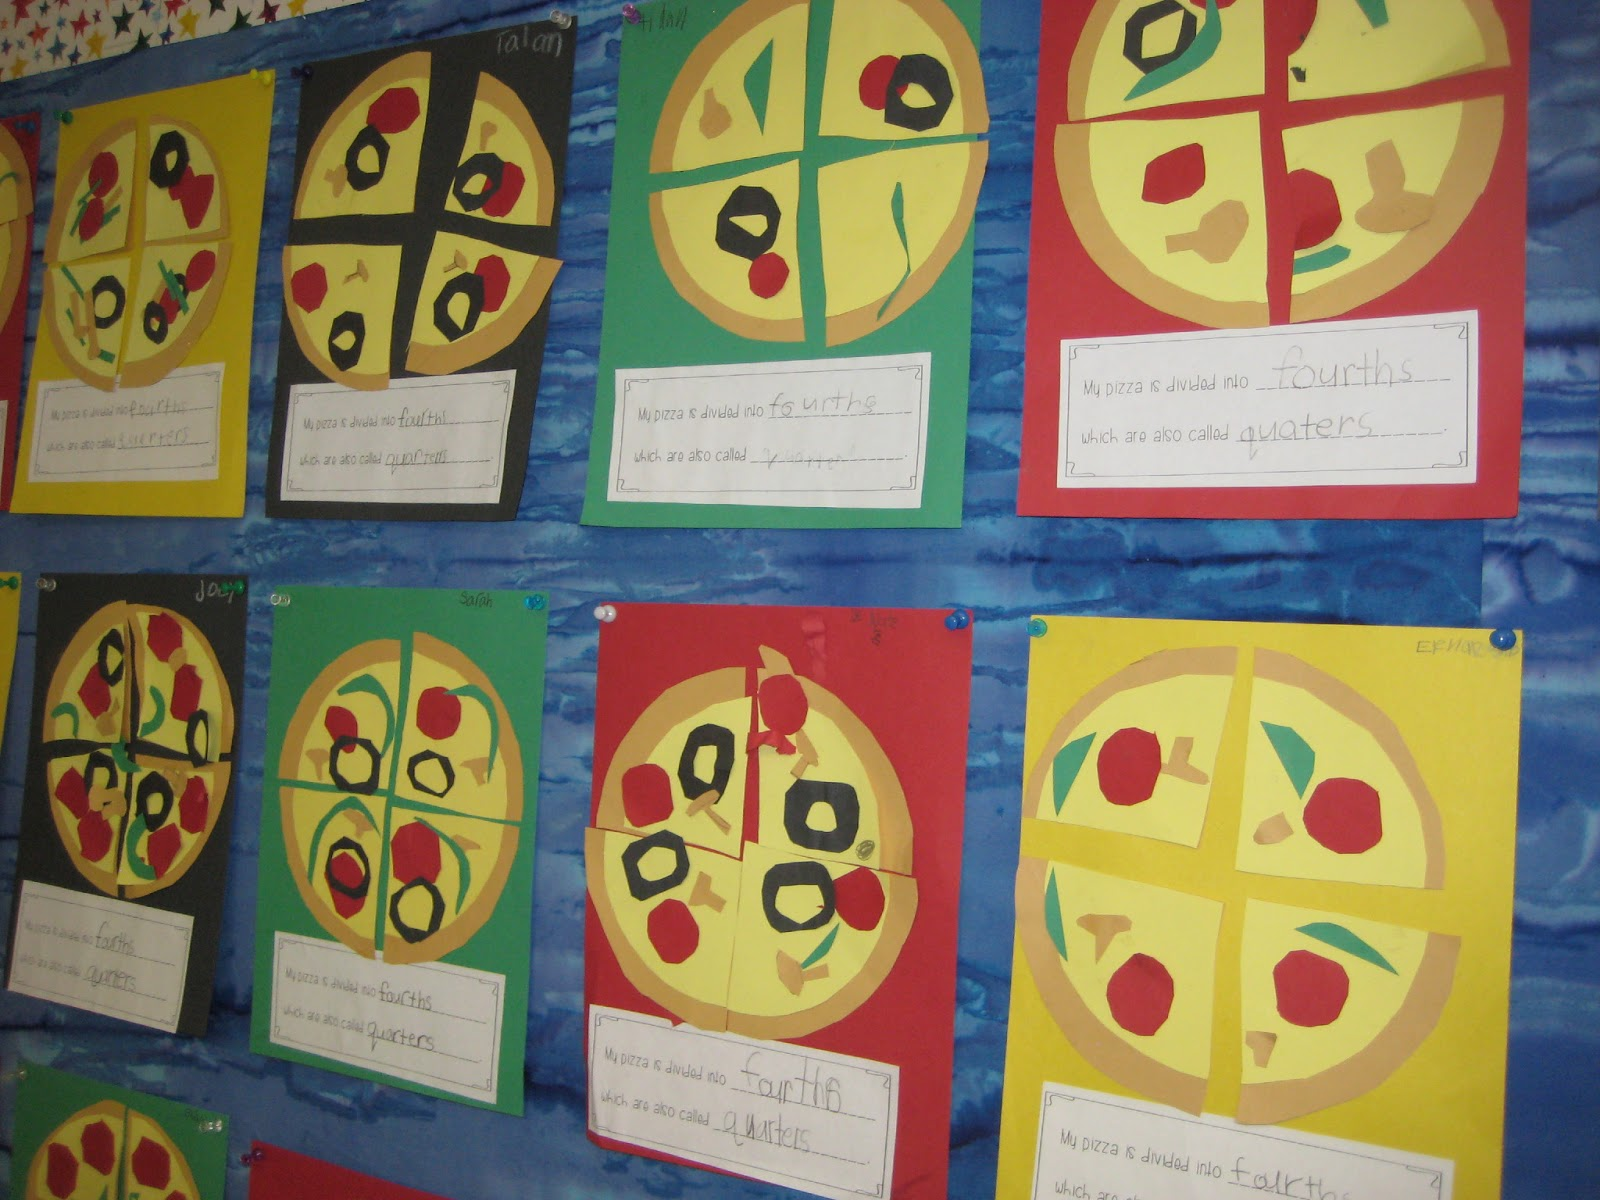 http://www.teacherspayteachers.com/Product/Pizza-Fractions-Craft-670401